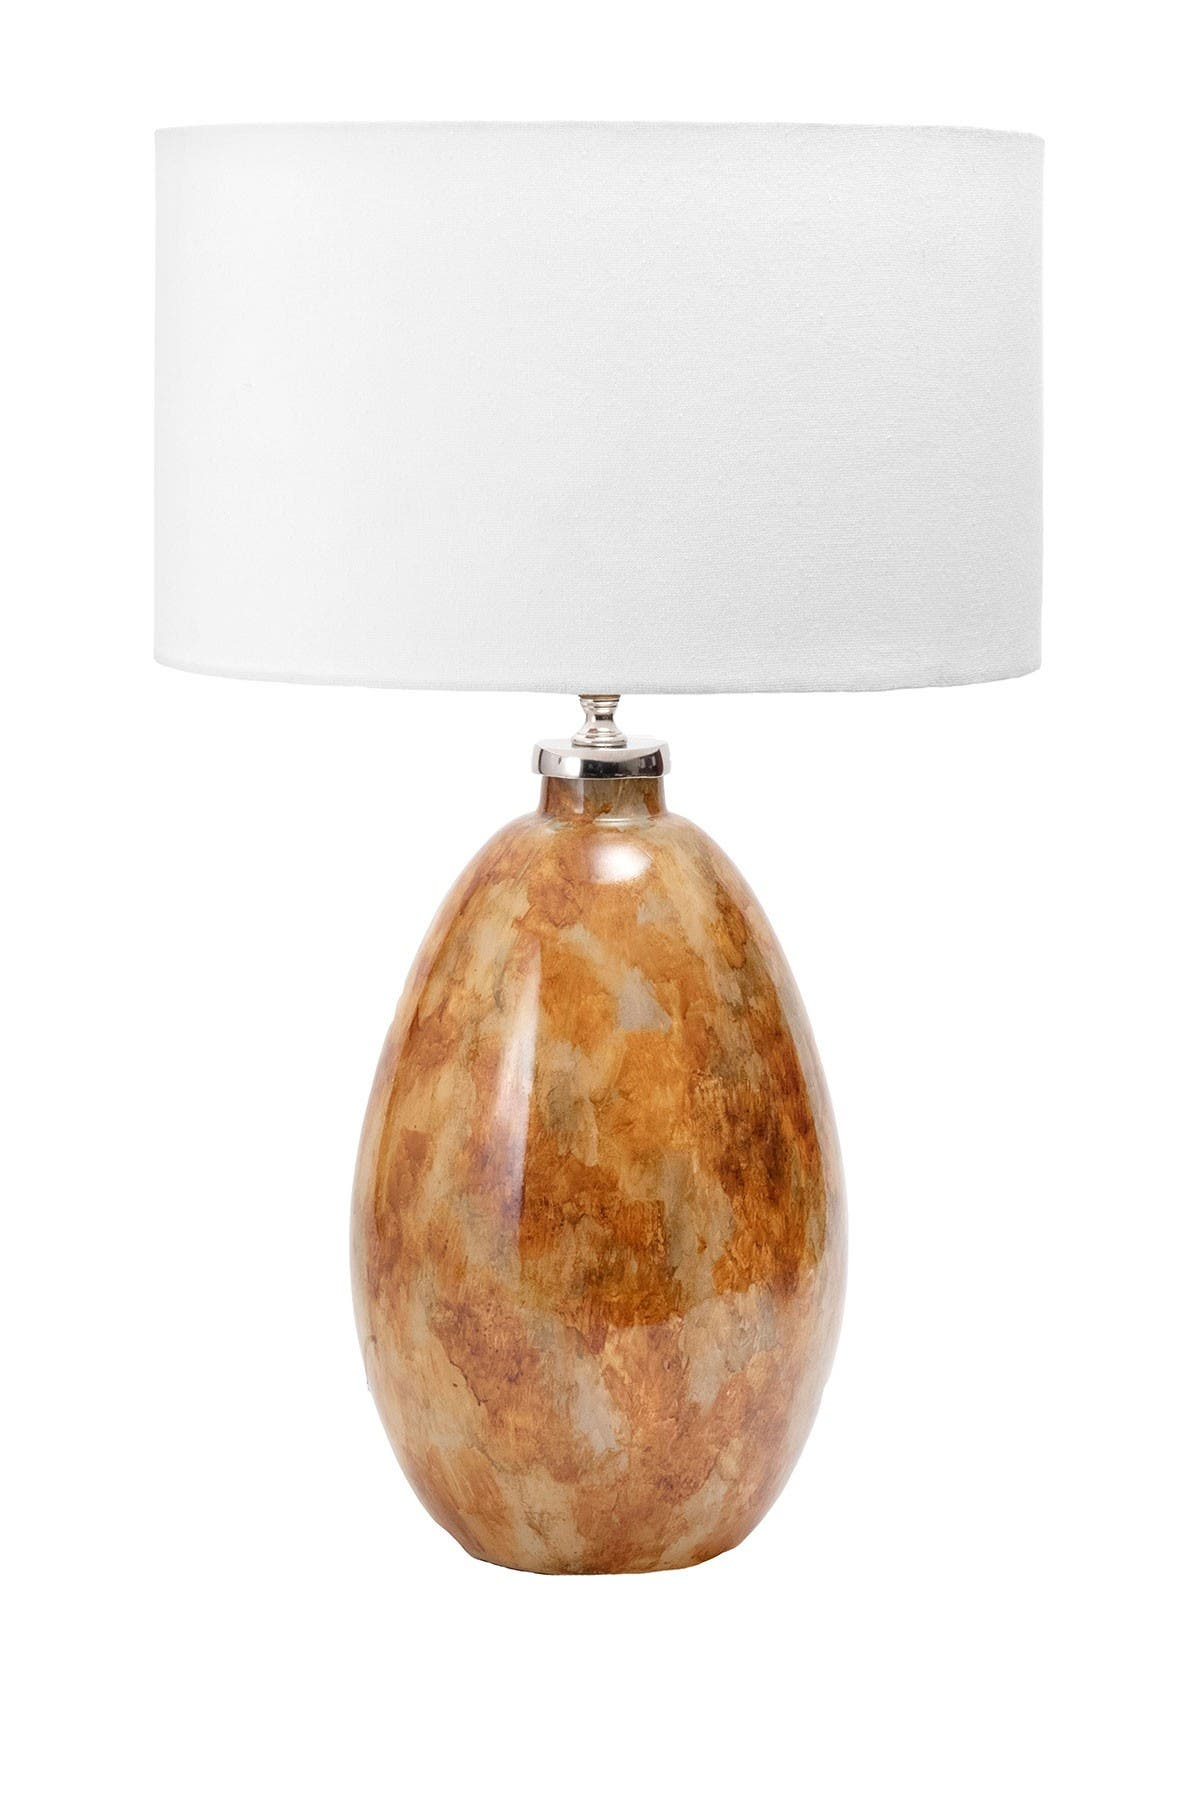 "Image of nuLOOM Amber Modern Teardrop 22"" Linen Shade Table Lamp"